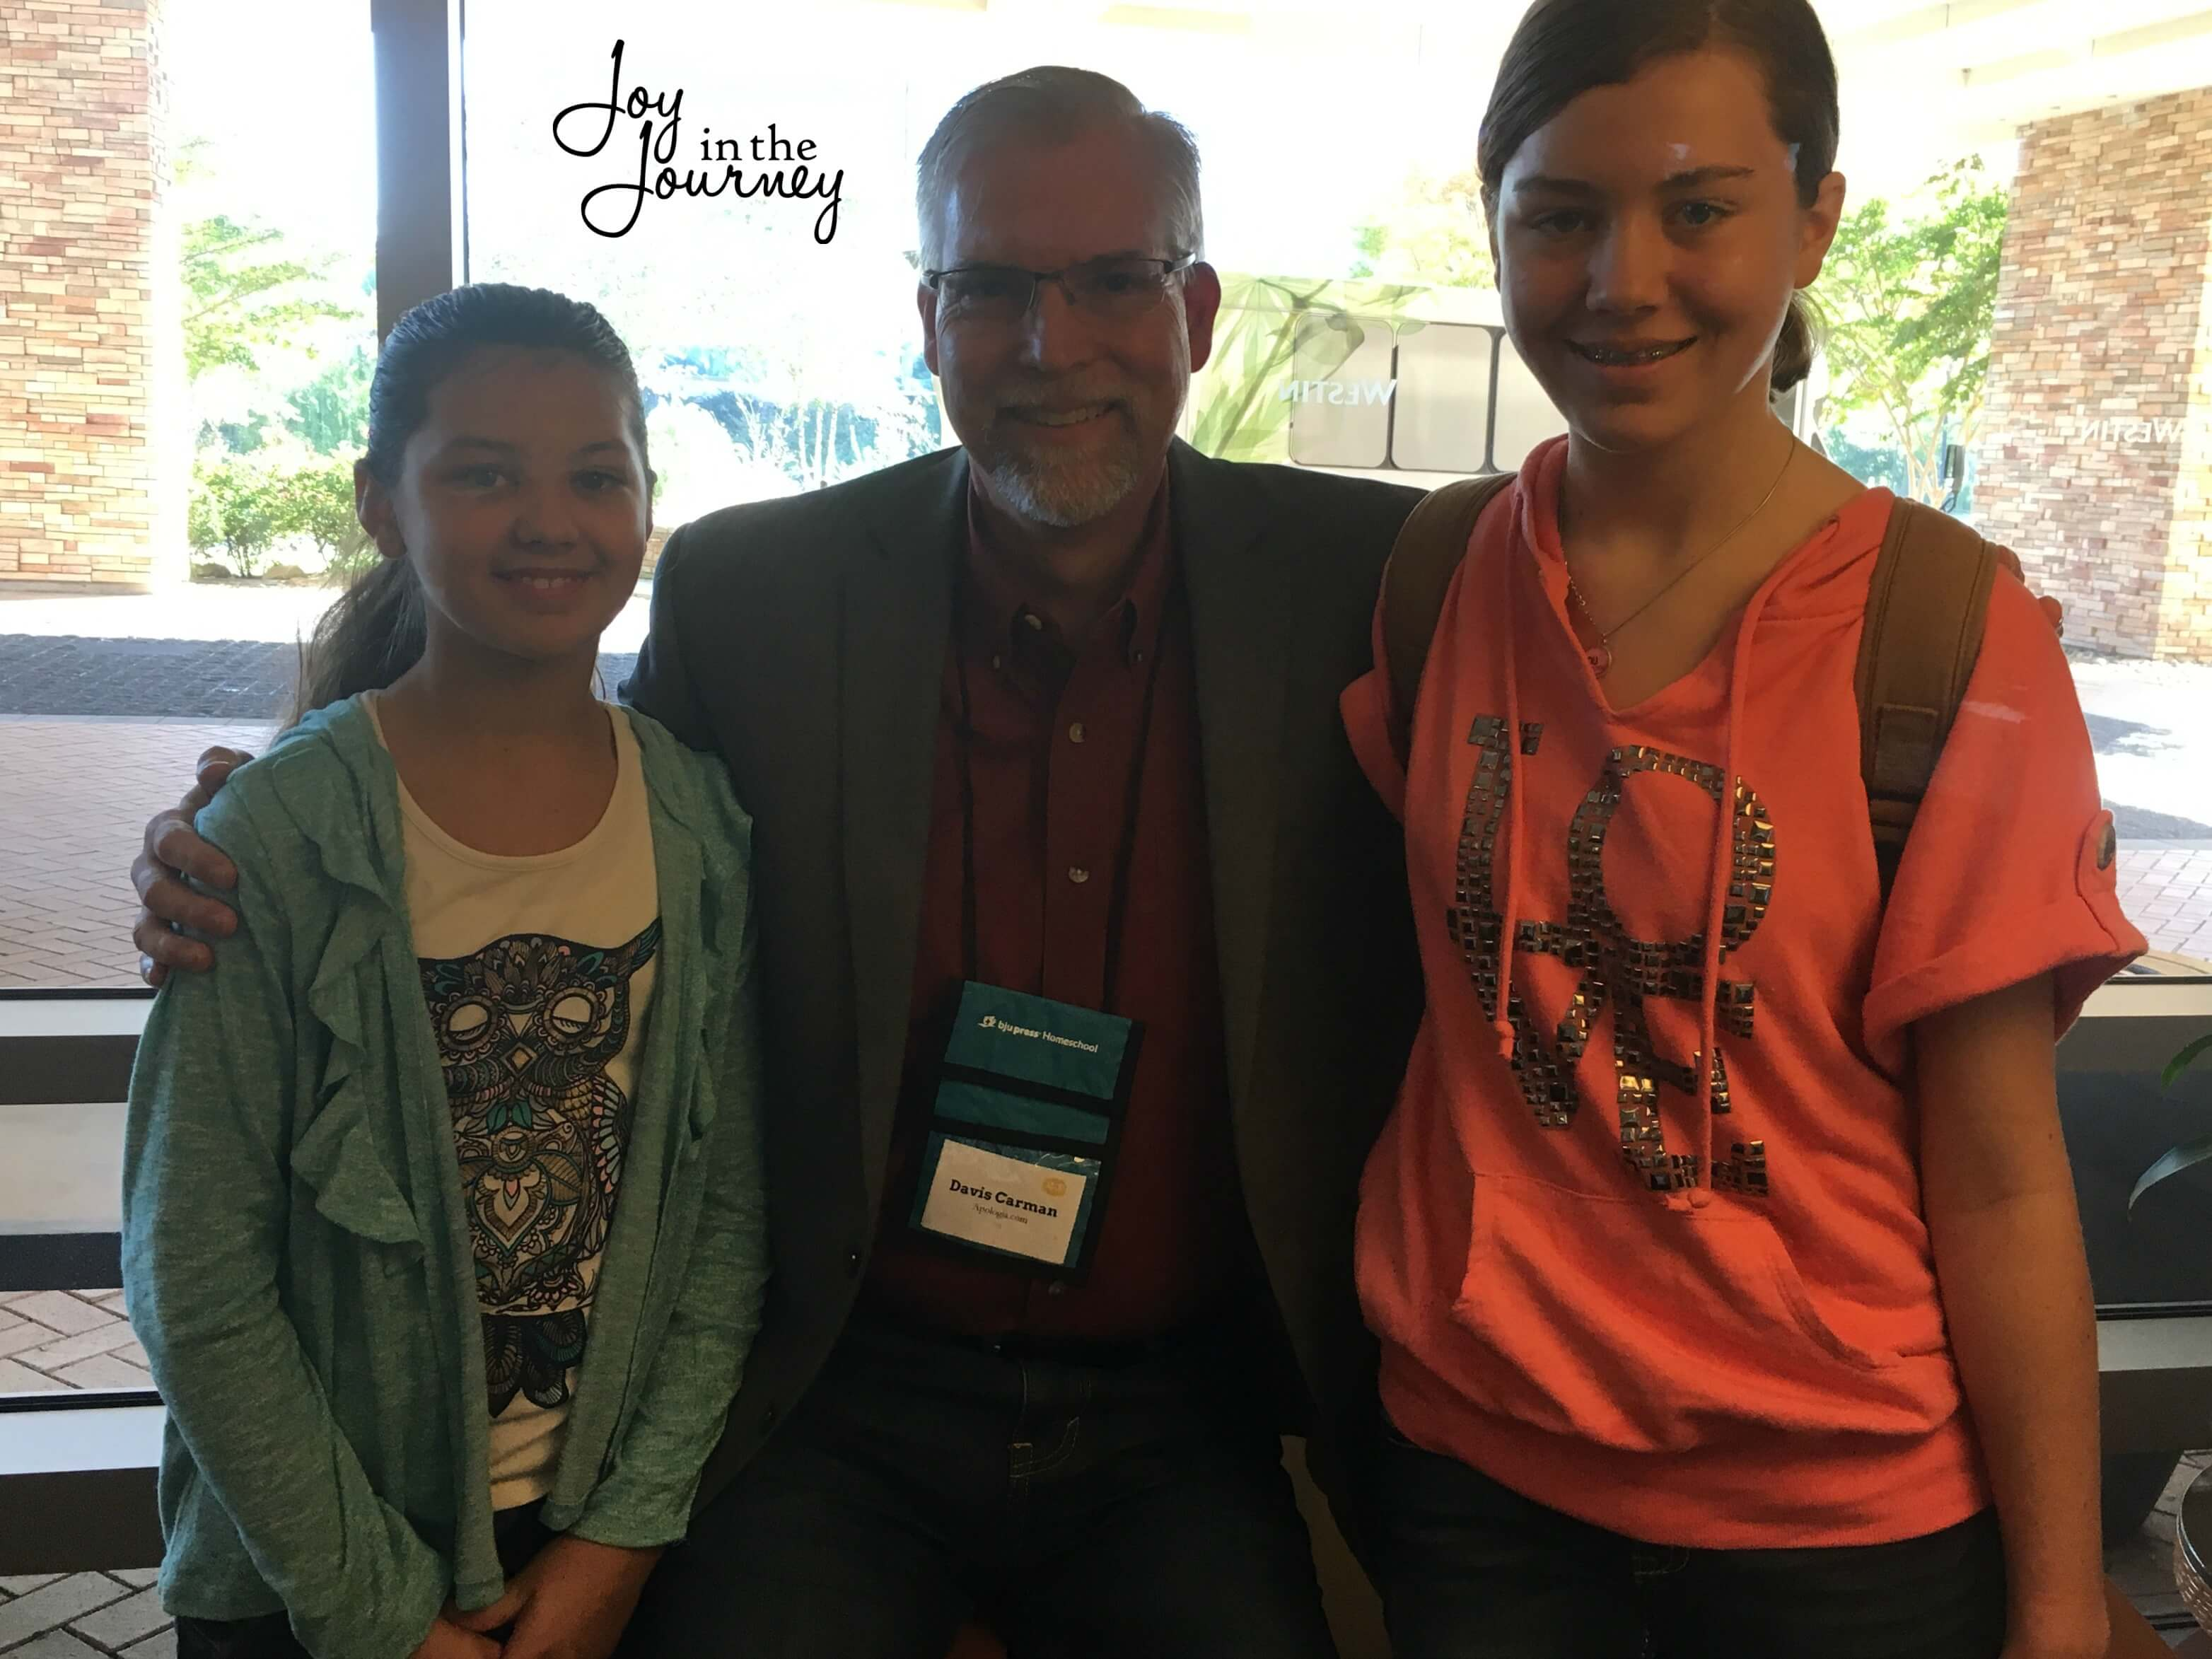 The girls loved meeting Davis Carman from Apologia while at the conference. He was telling them about some upcoming projects they are working on and let's just say we are all pretty excited about them!